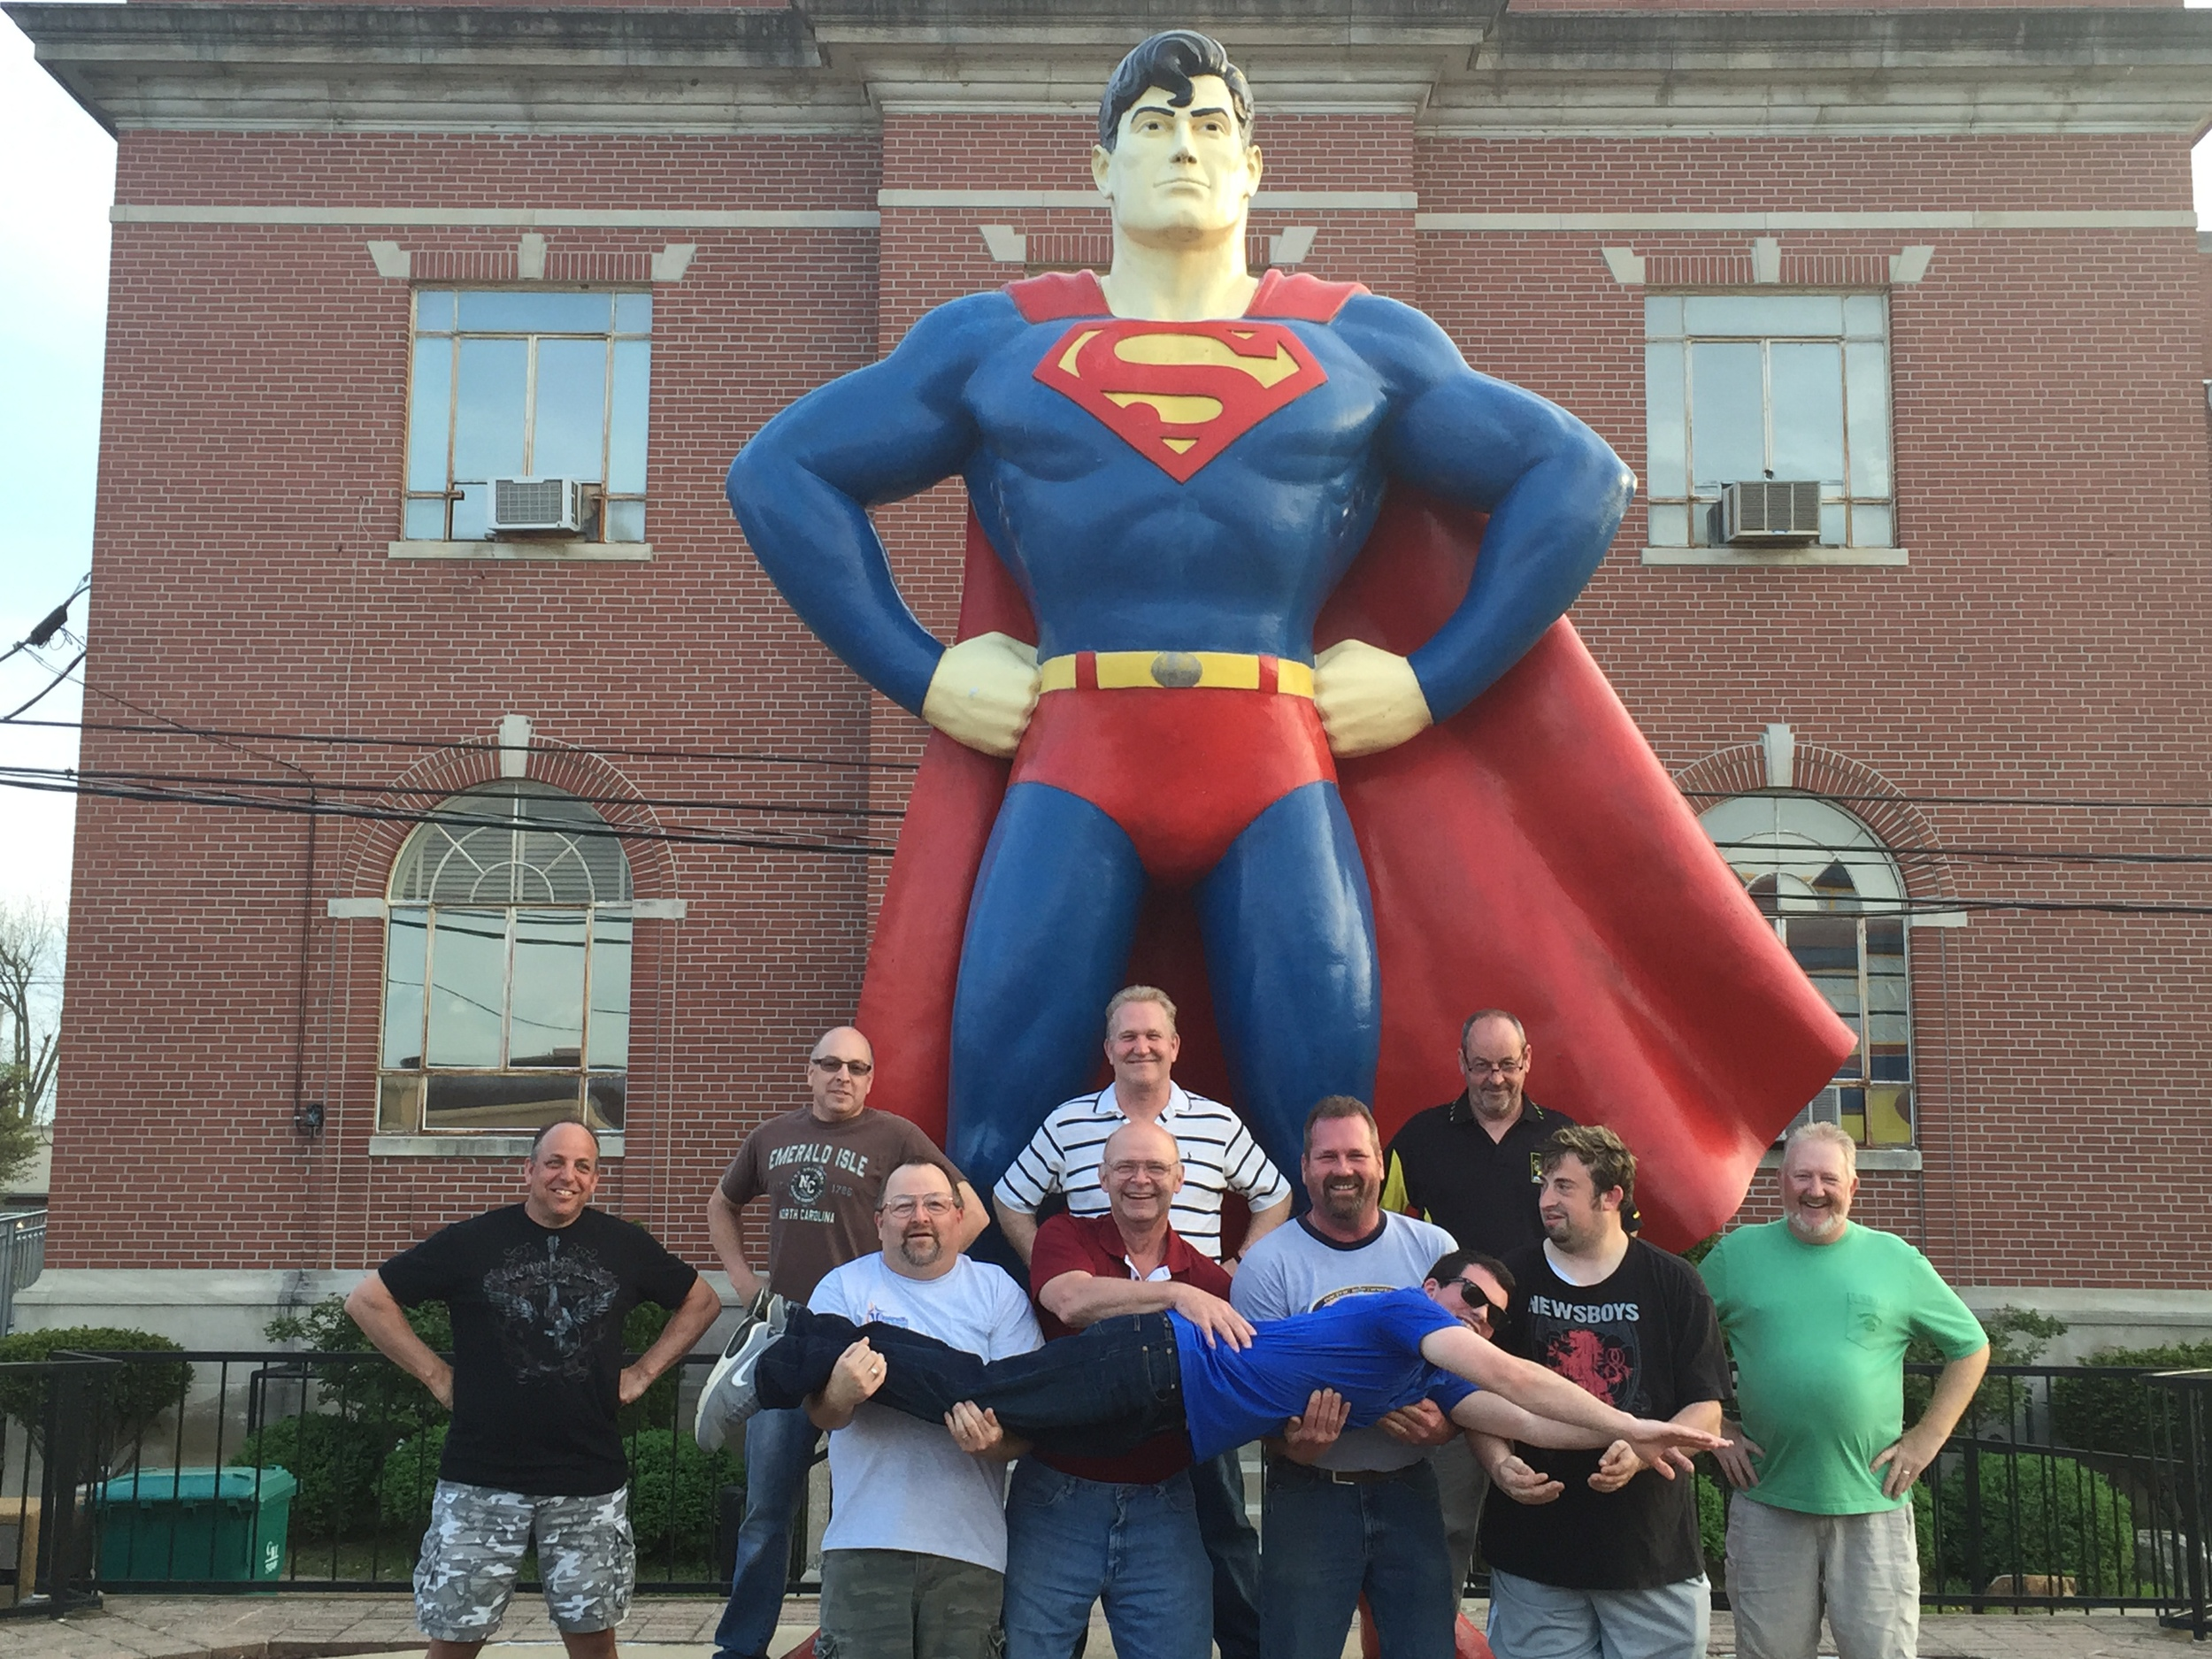 Part of the team in front of the thirty foot Superman statue in Metropolis, IL.